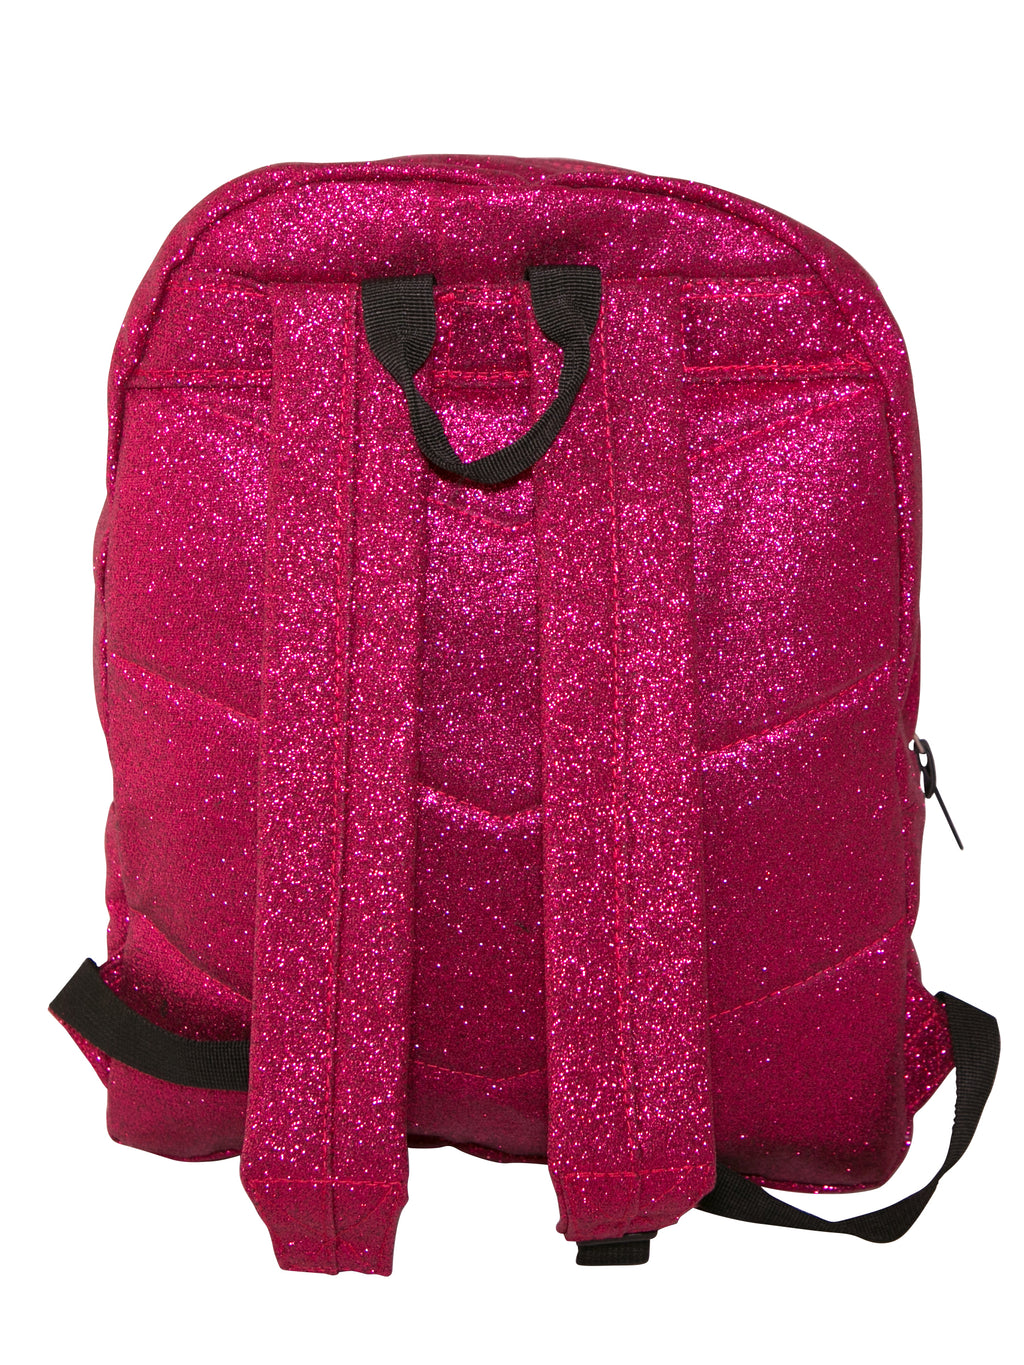 HYPE PINK GLITTER BACKPACK RUCKSACK BAG - PINK